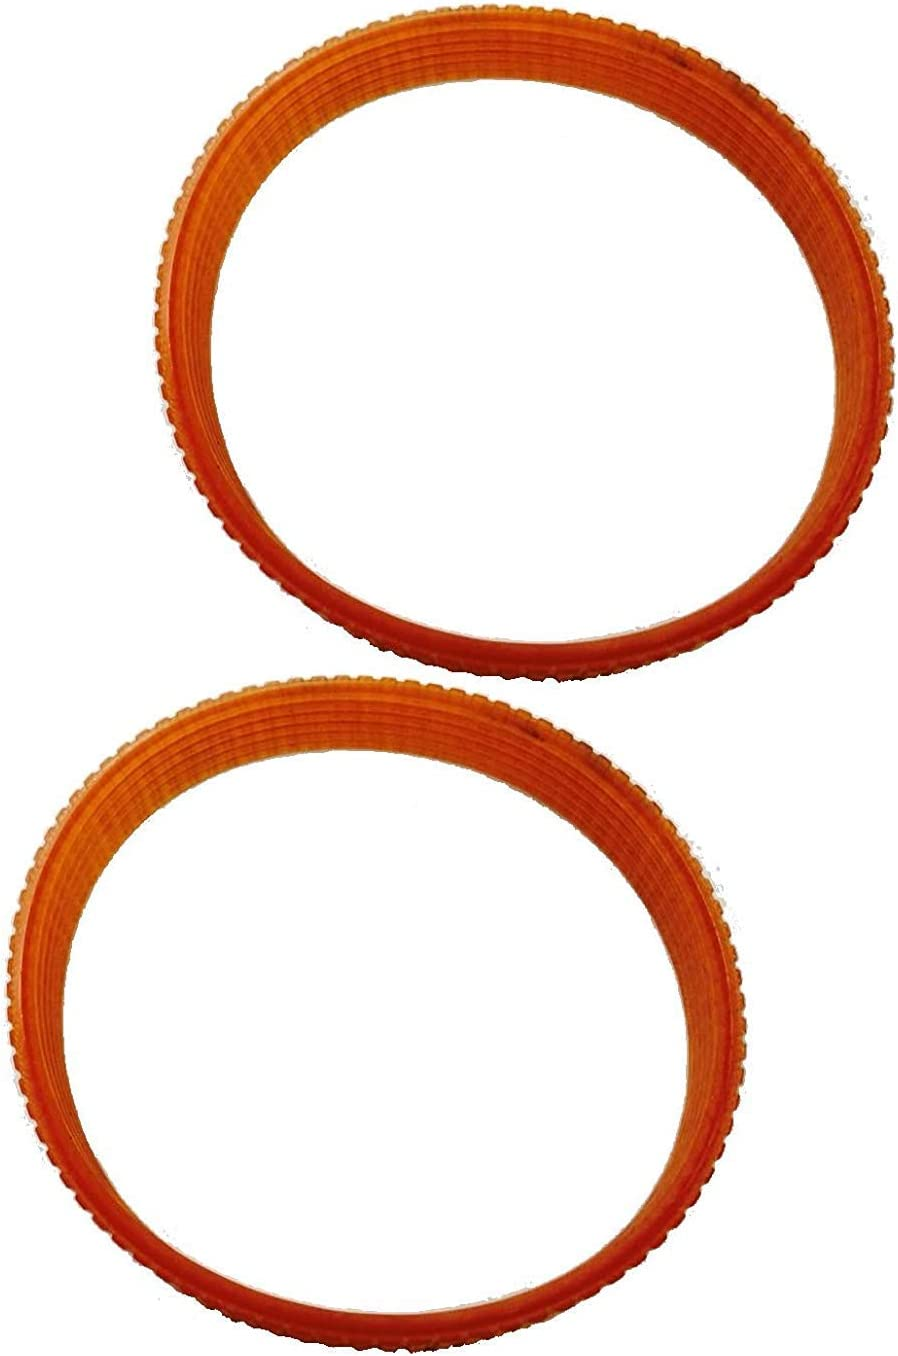 Planer Replacement Belt 285968-00 for DeWalt DW733, Craftsman 351217130-2 pack